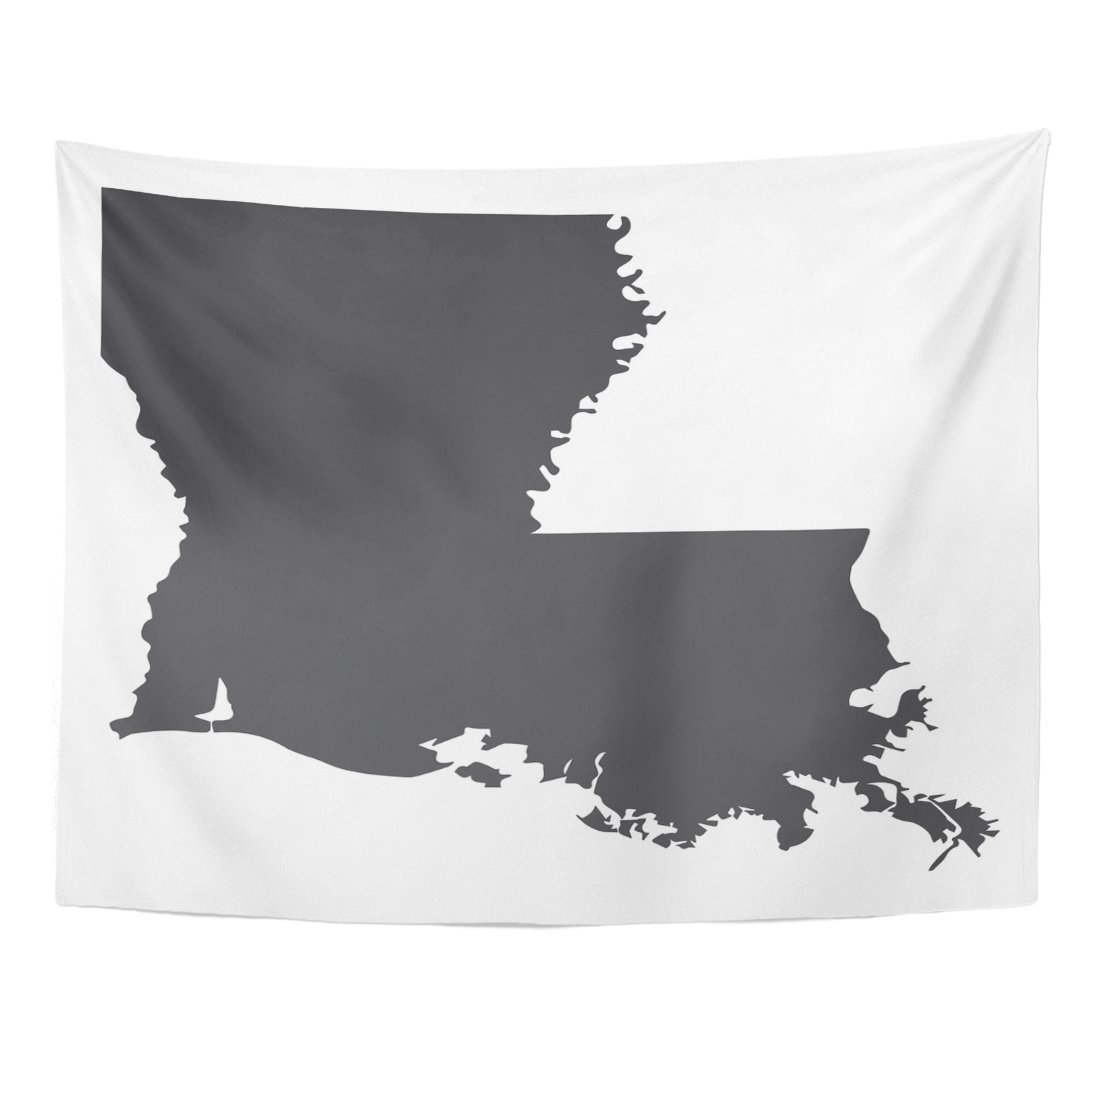 TOMPOP Tapestry Silhouette Louisiana State Map in Black on Abstract America Home Decor Wall Hanging for Living Room Bedroom Dorm 60x80 Inches